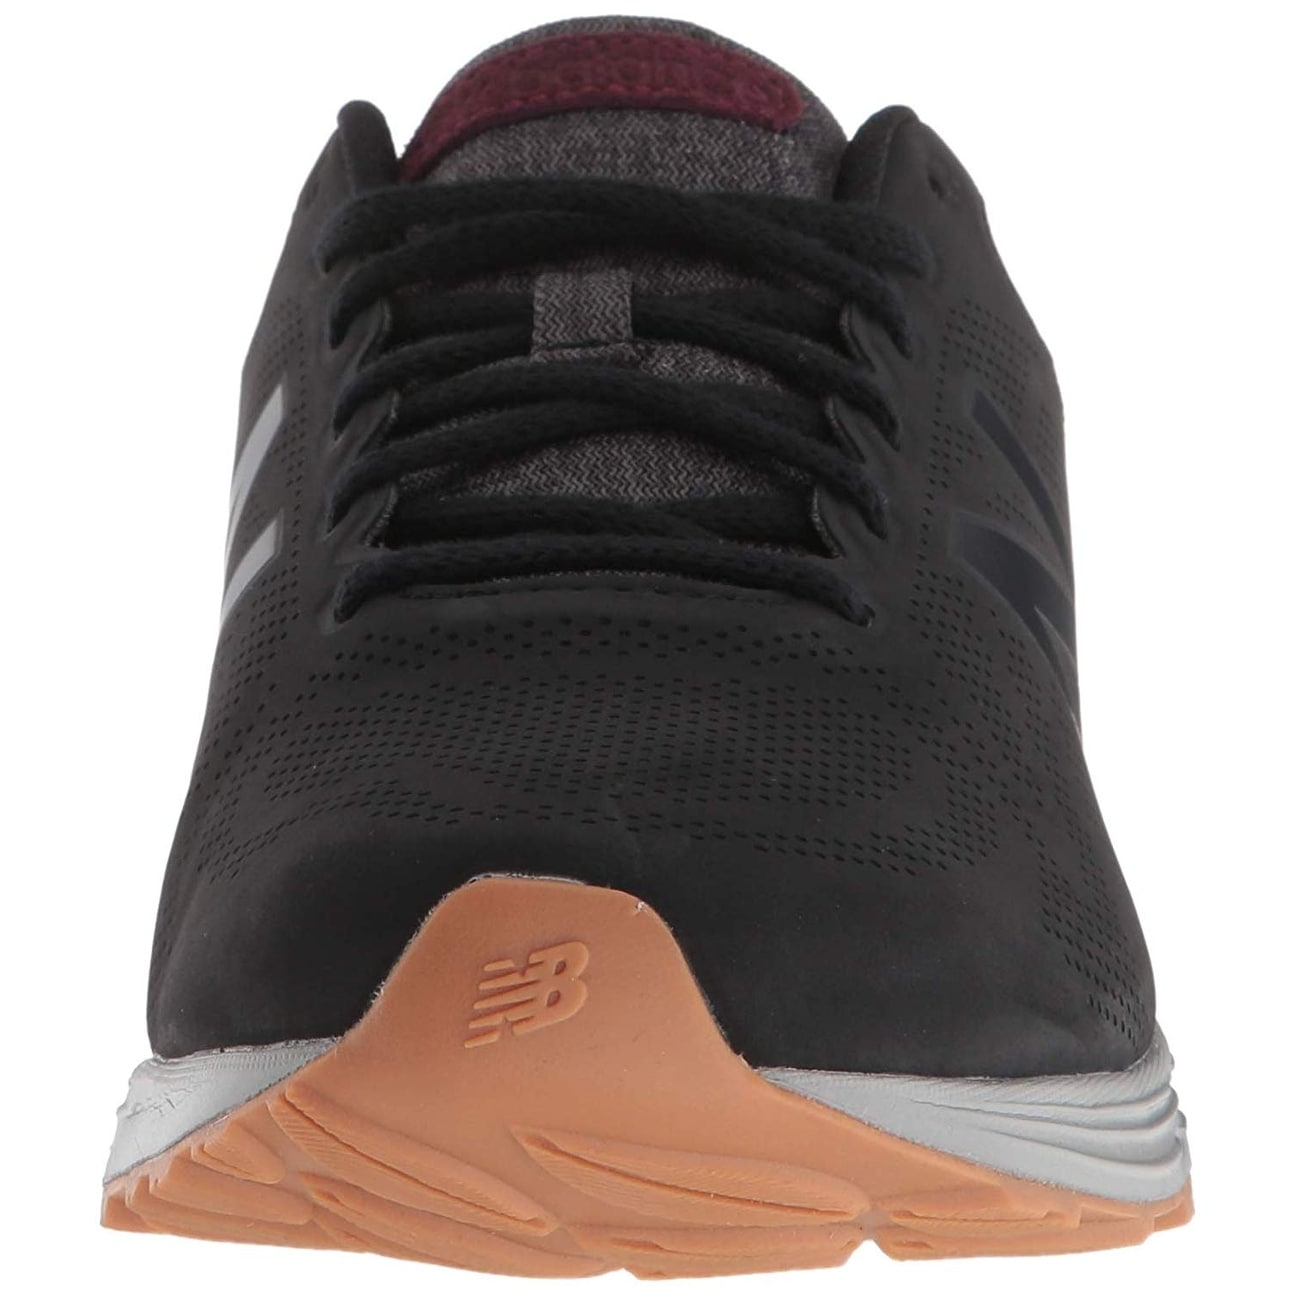 the best attitude 8878b 23850 New Balance Mens Marislb1 Low Top Lace Up Running Sneaker